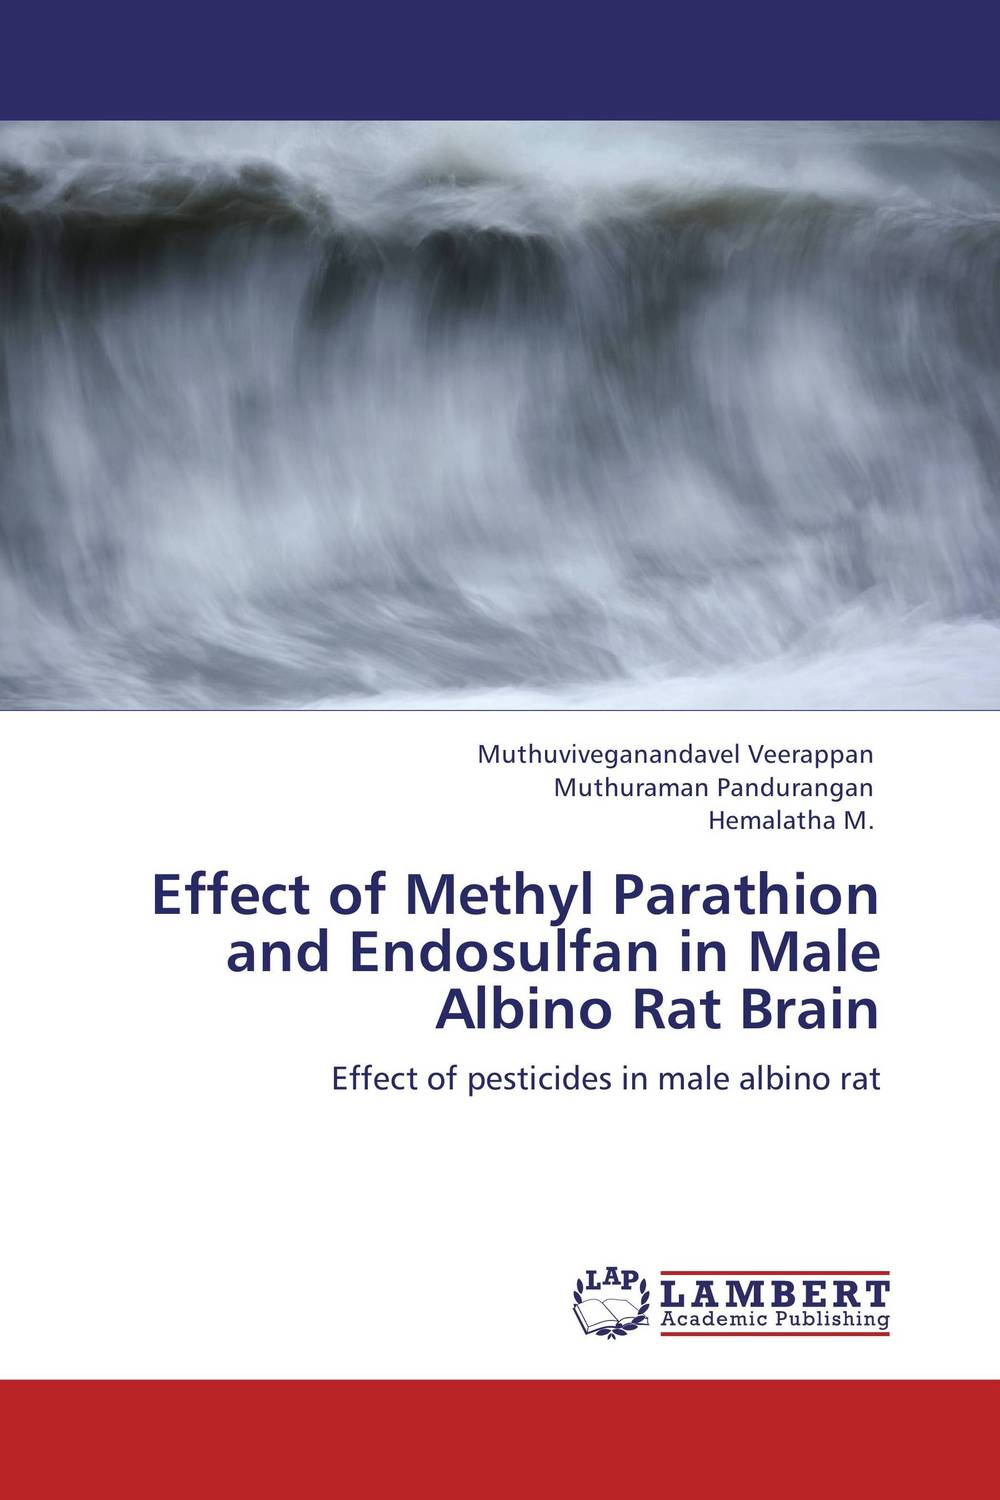 Effect of Methyl Parathion and Endosulfan in Male Albino Rat Brain me and my place in space